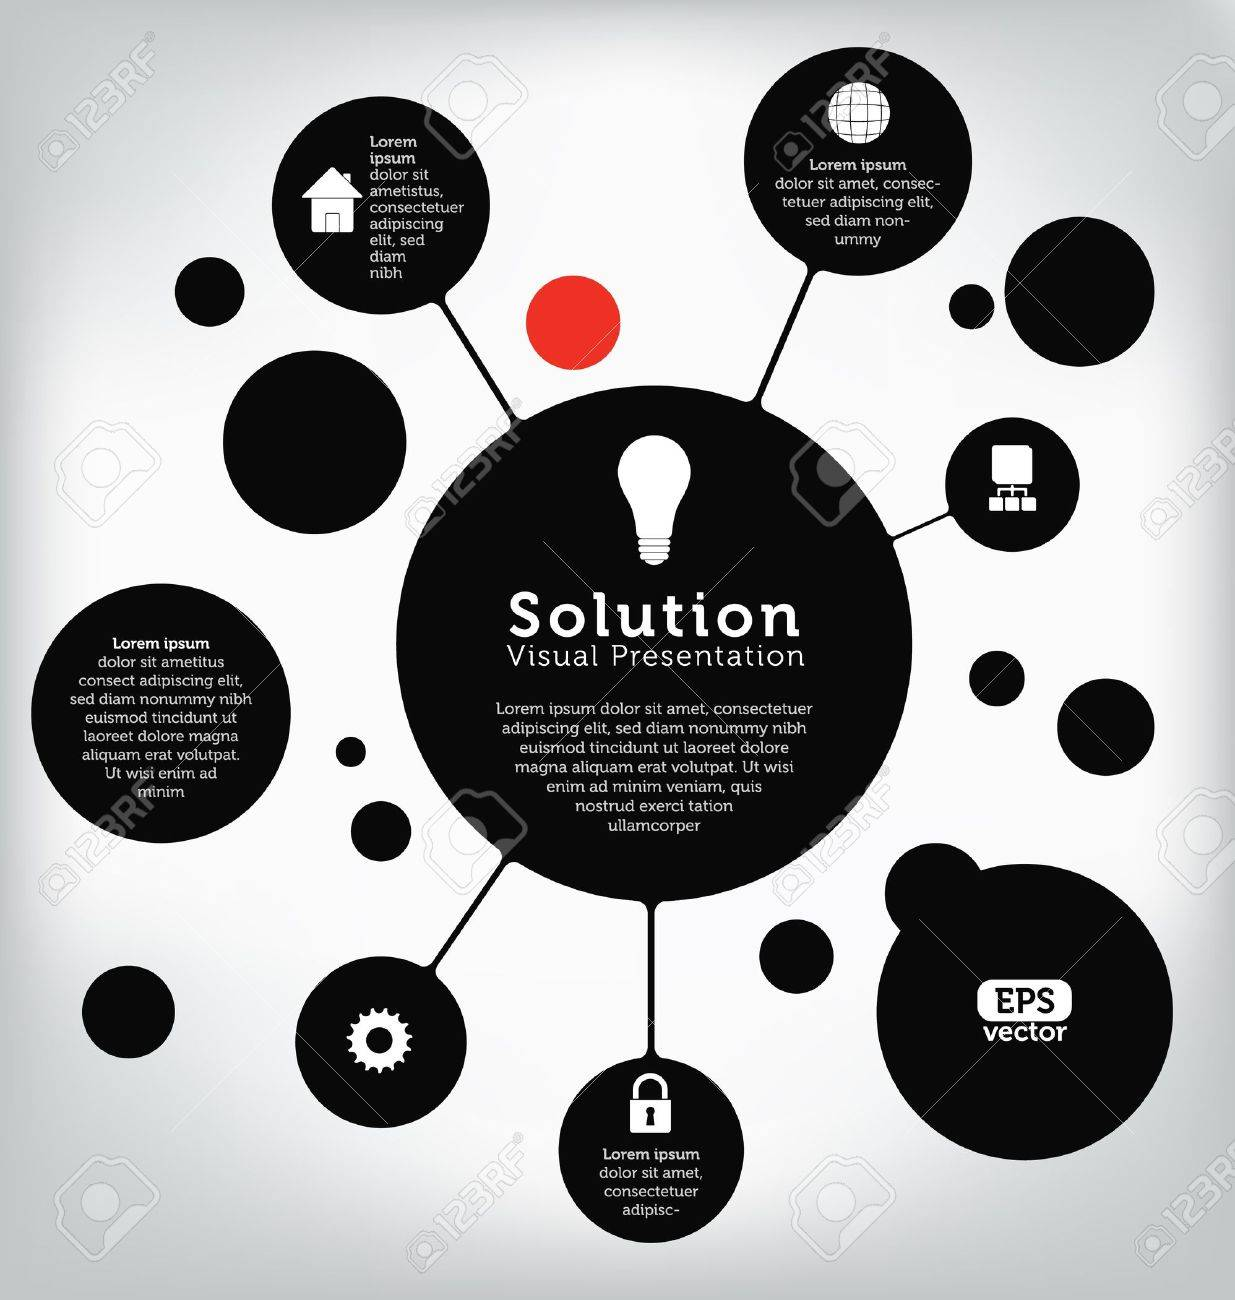 Template for visual presentation in information technology - 14559496